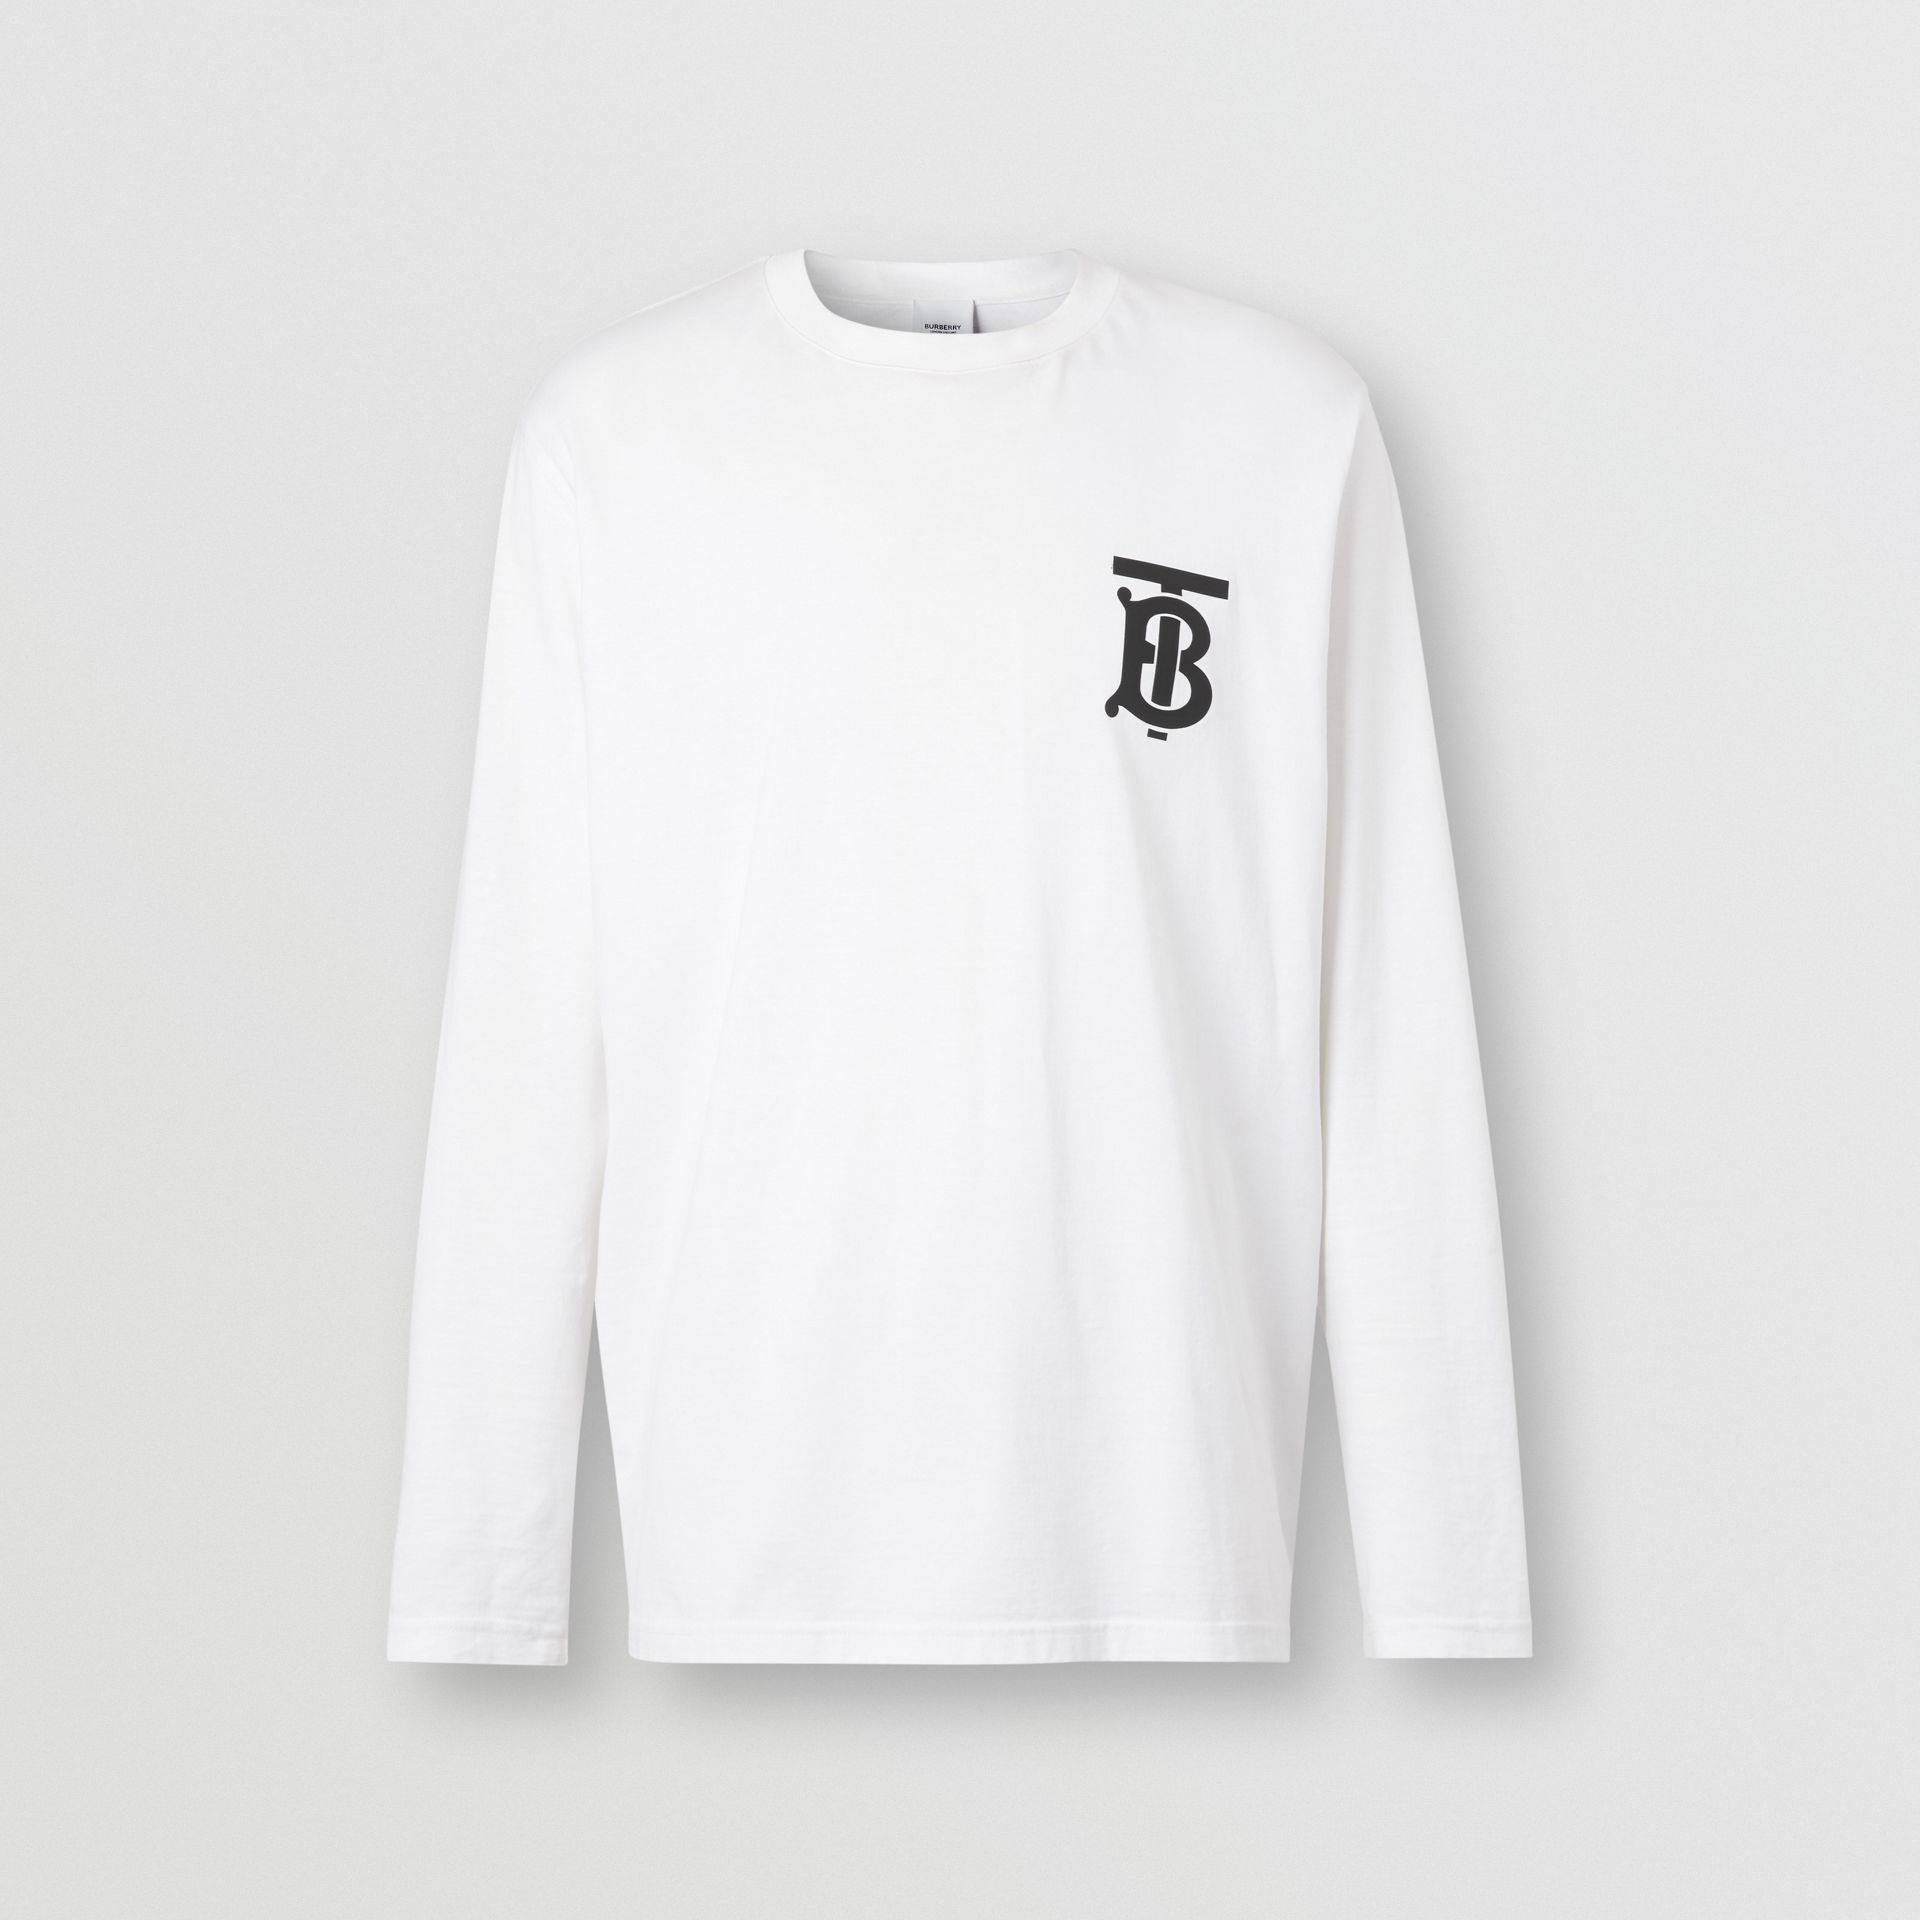 Long-sleeve Monogram Motif Cotton Top in White - Men | Burberry Hong Kong S.A.R - gallery image 3